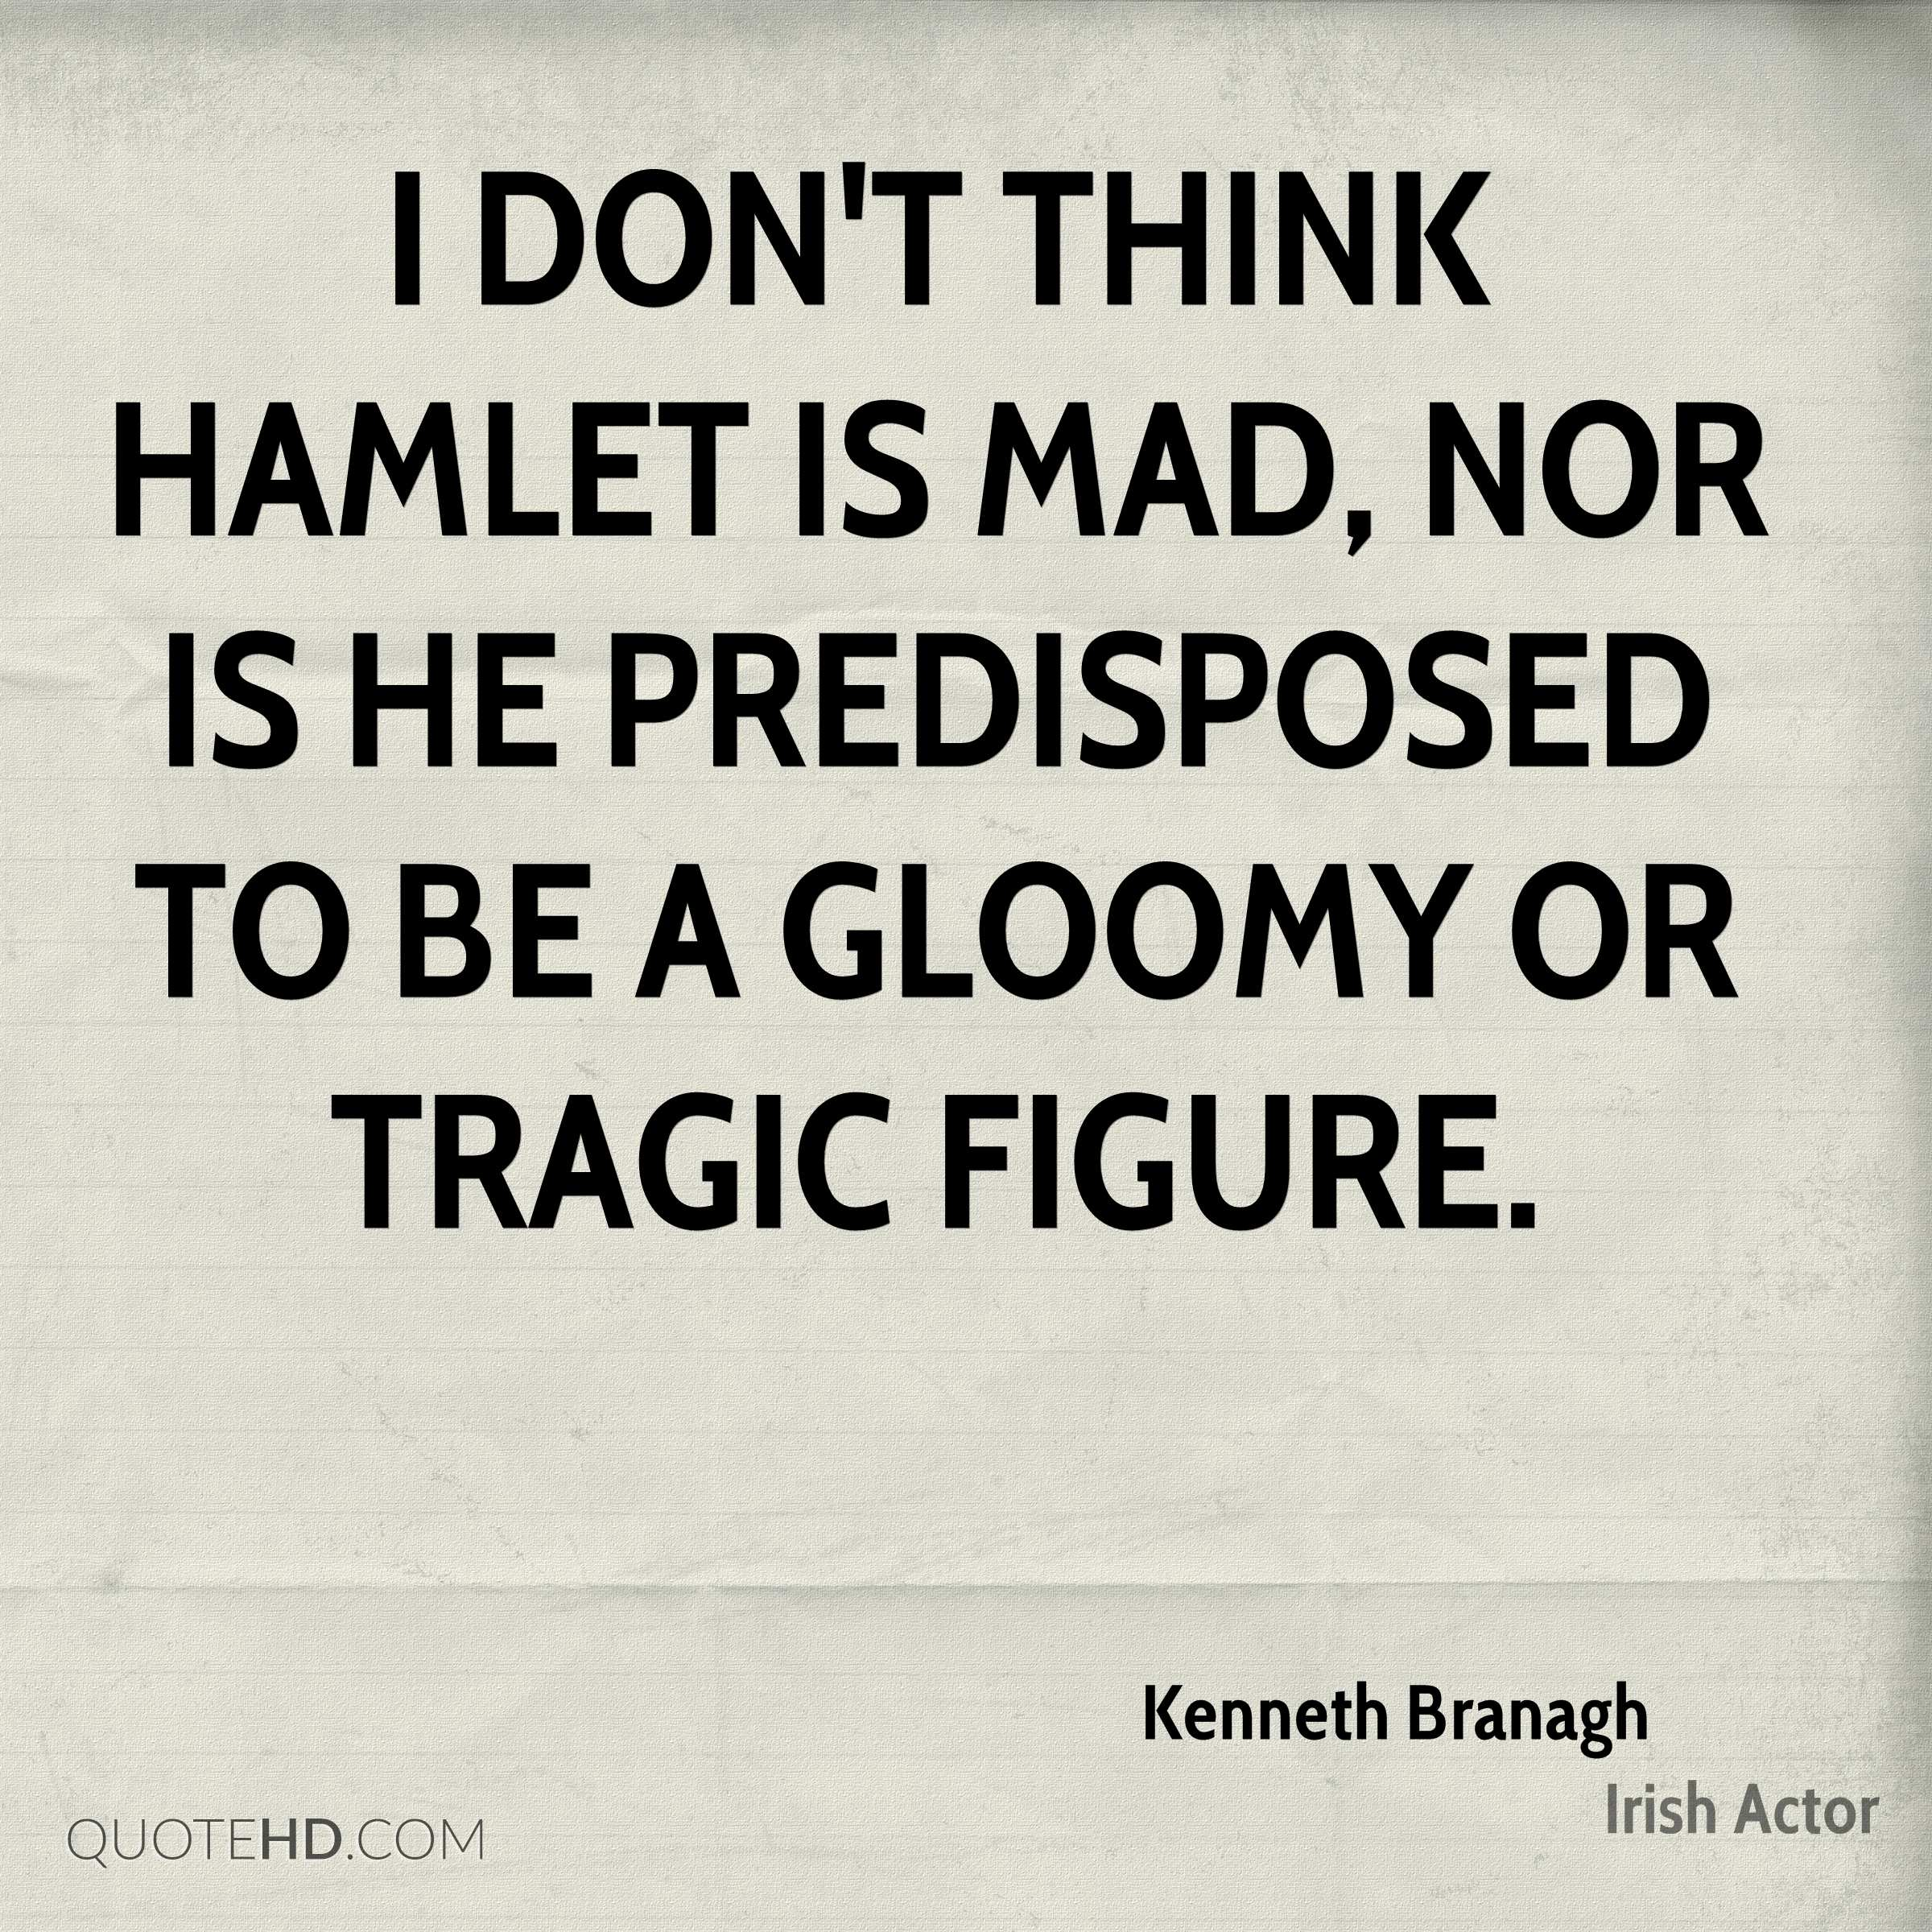 I don't think Hamlet is mad, nor is he predisposed to be a gloomy or tragic figure.